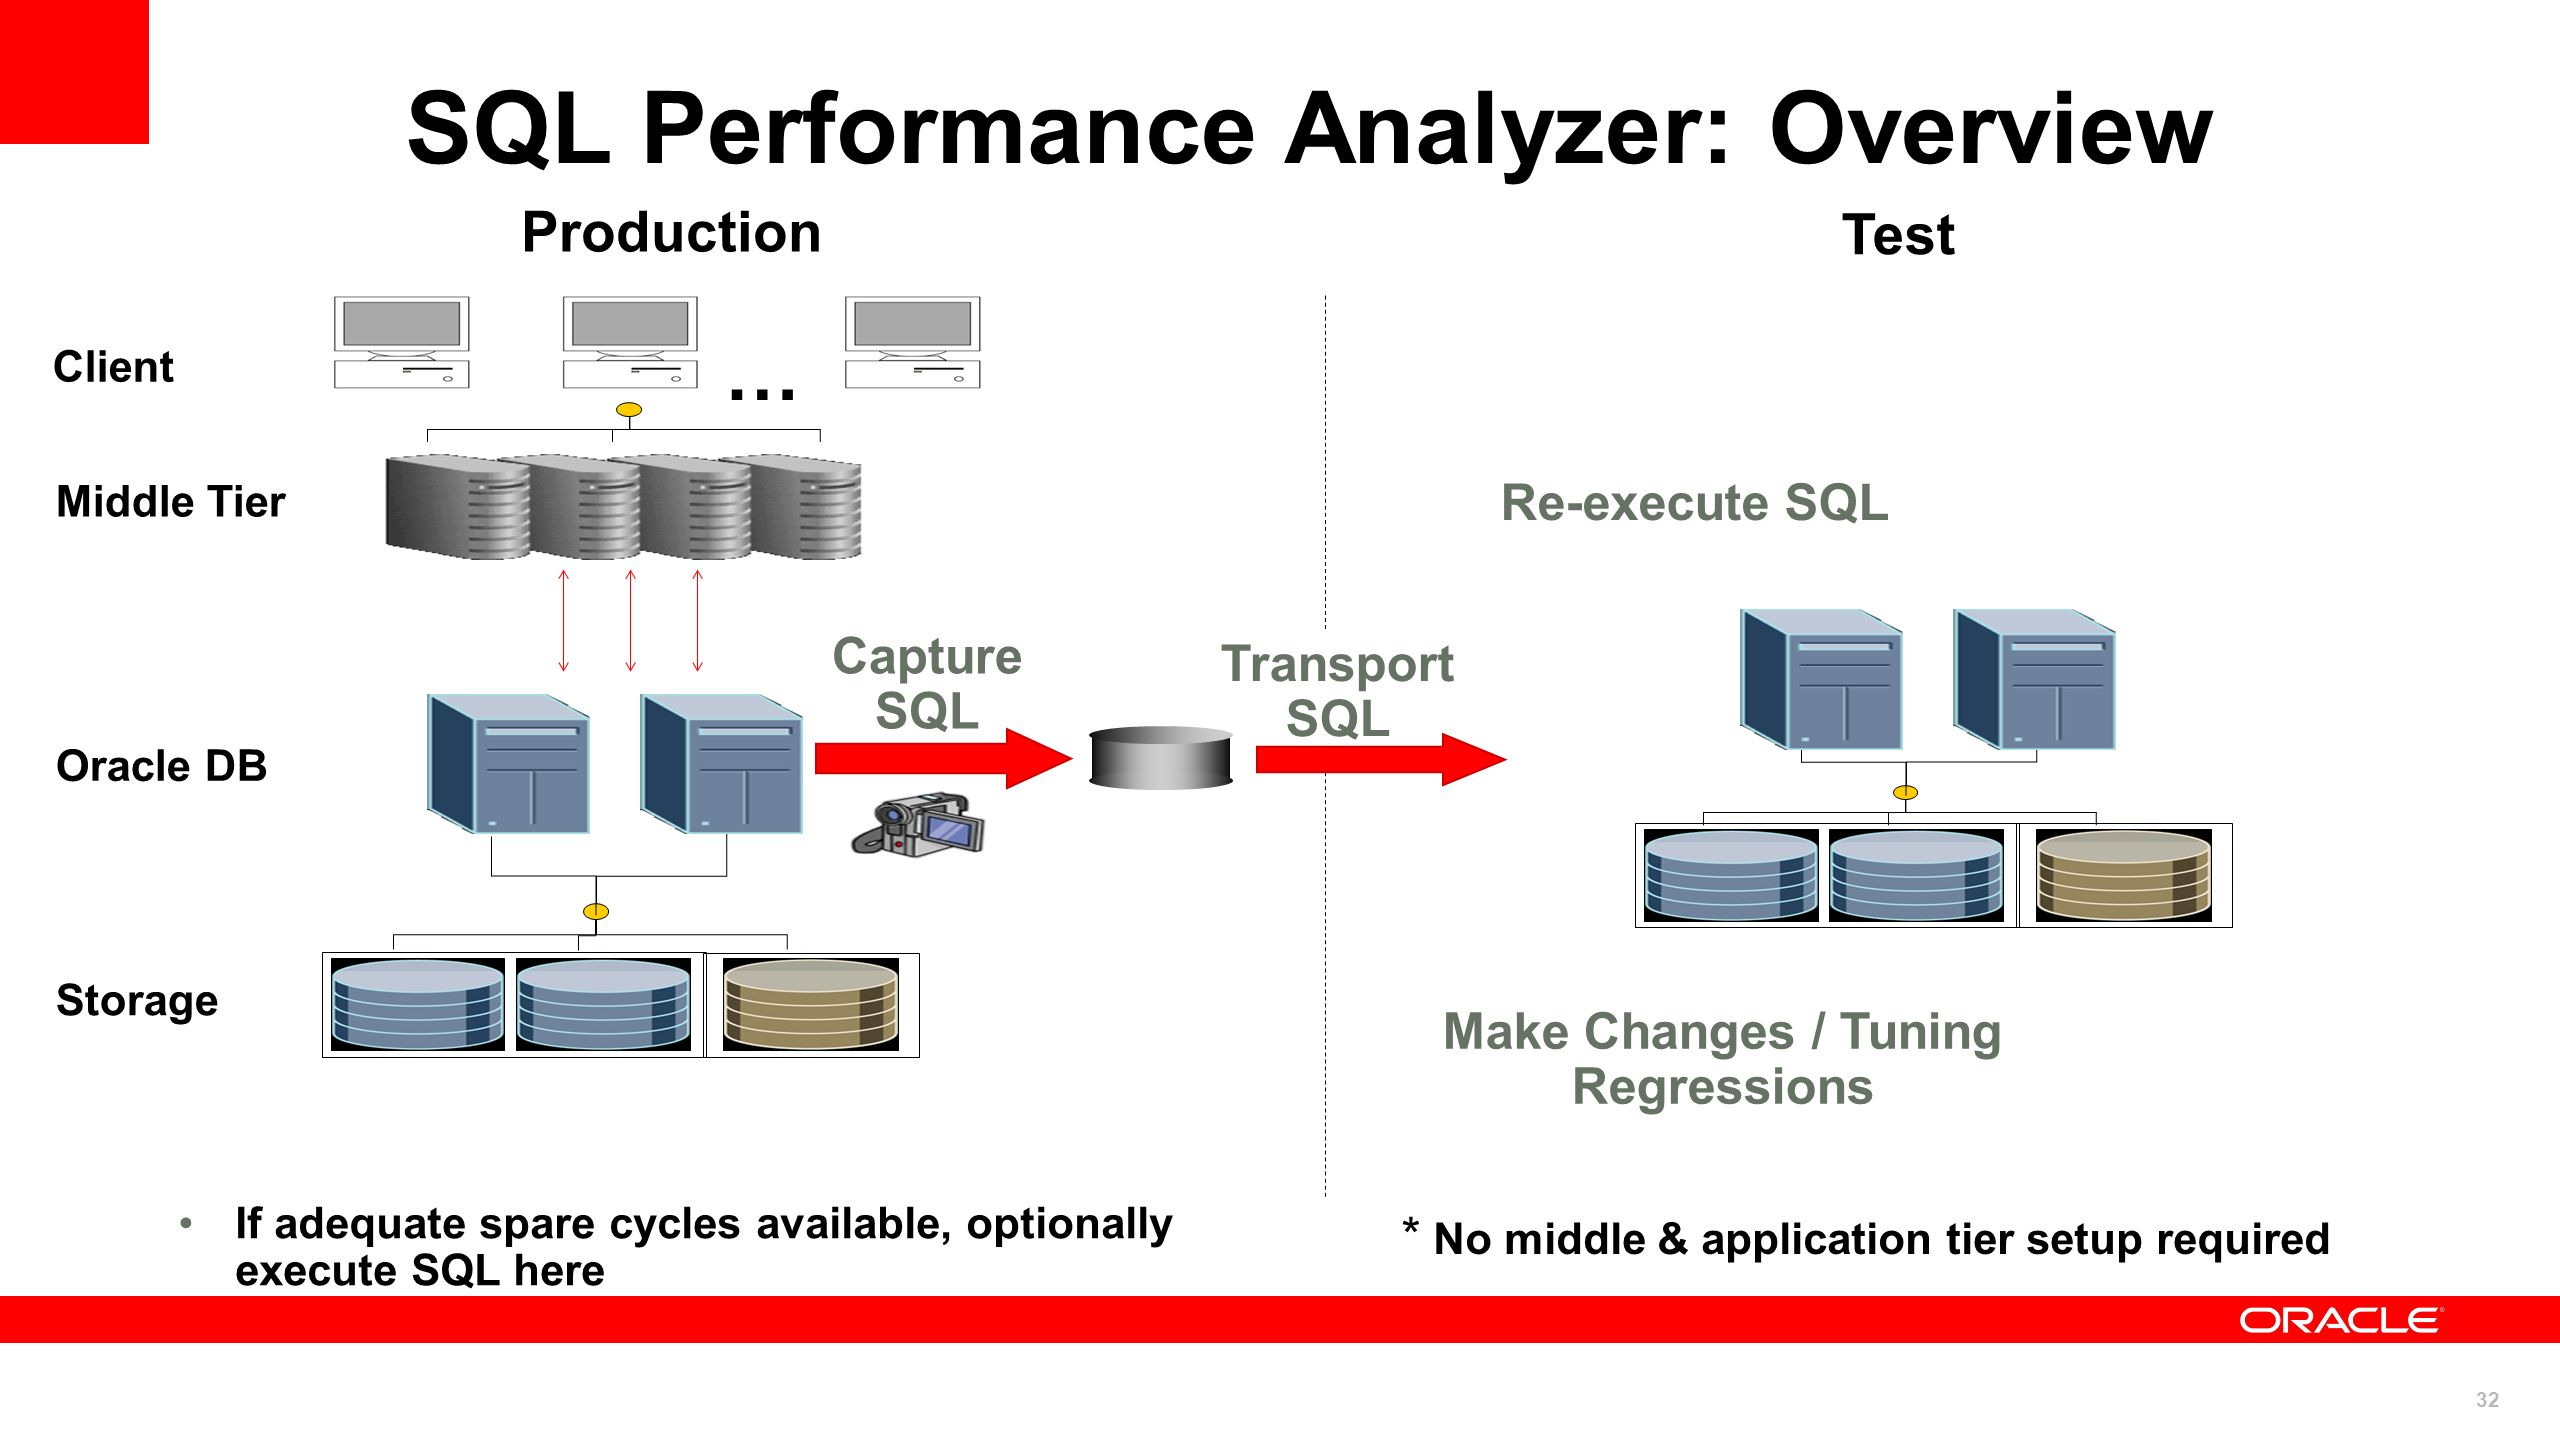 SQL Performance Analyzer: Overview Make Changes / Tuning Regressions